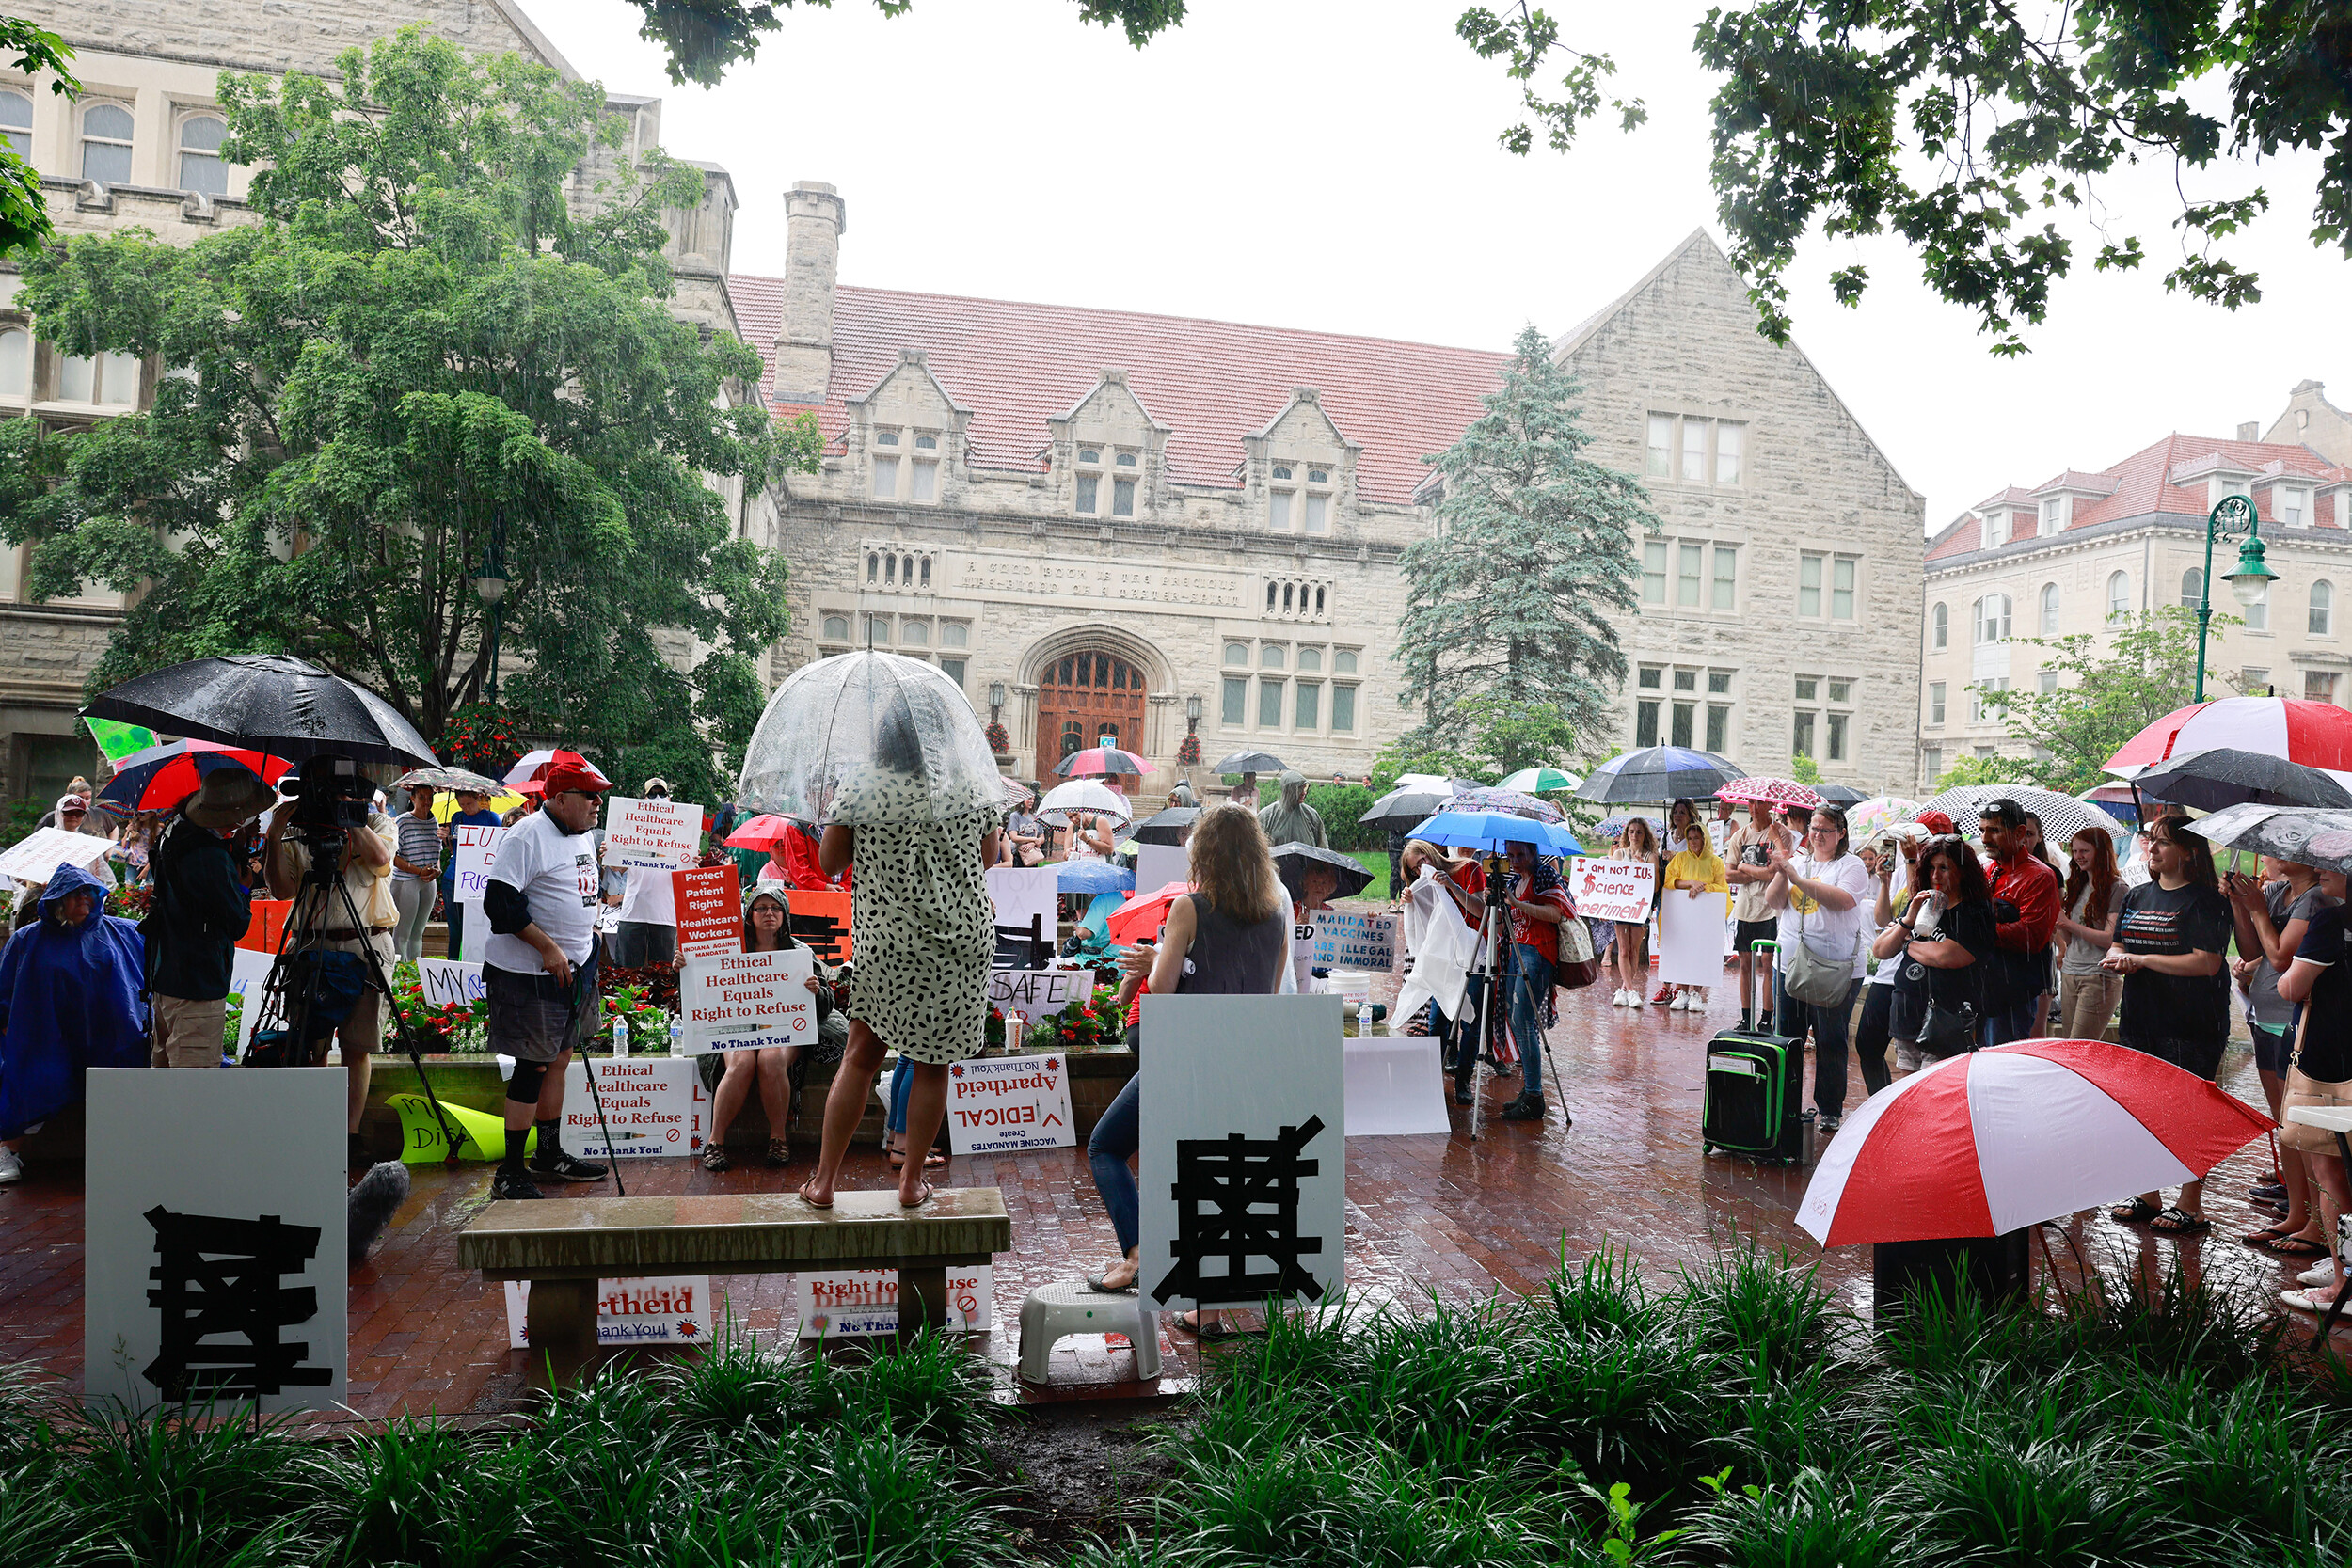 Federal judge upholds Indiana University's Covid-19 vaccination requirements